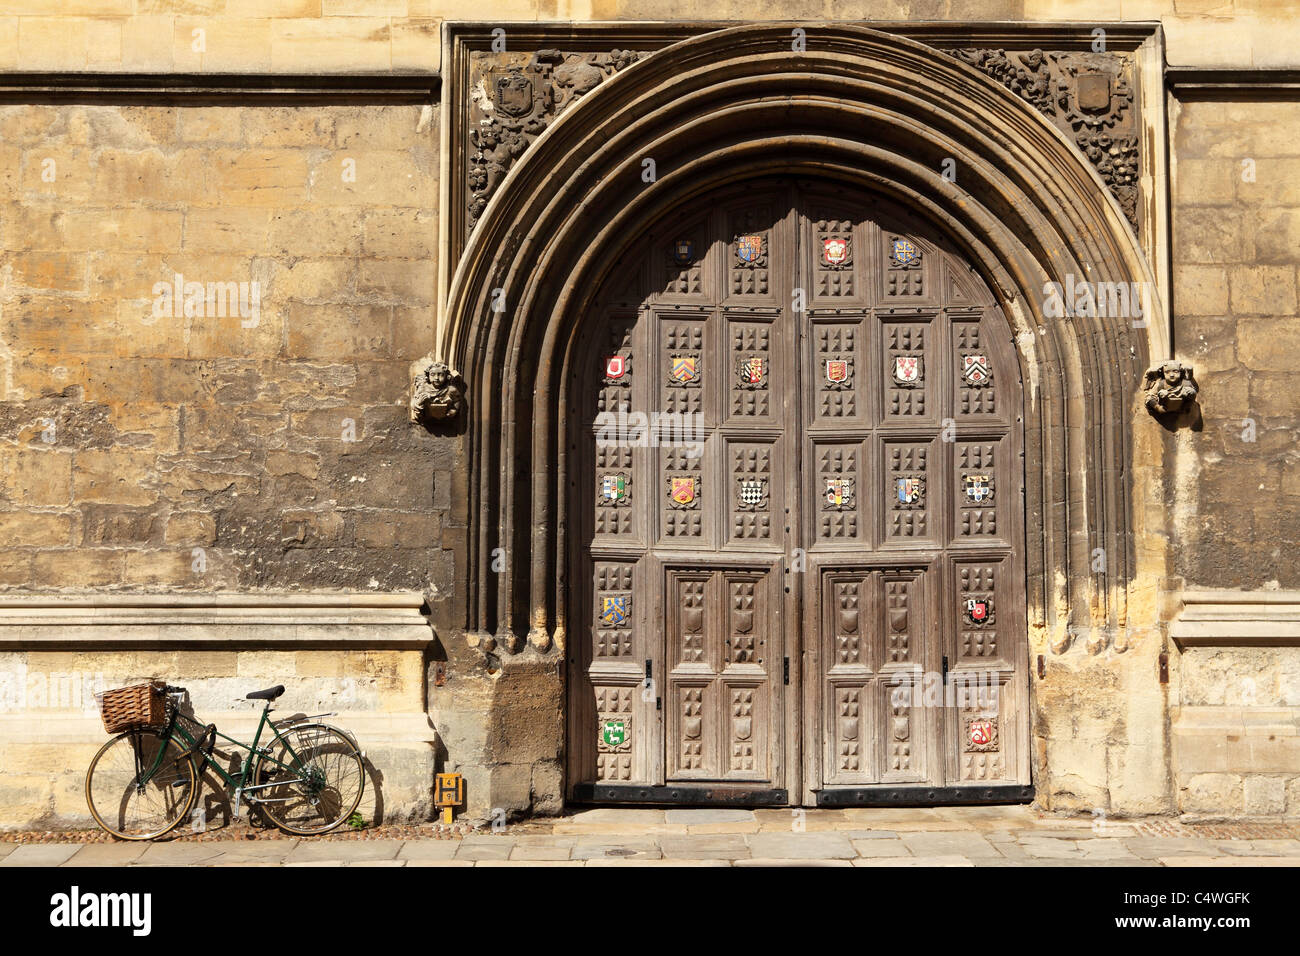 The closed doors of the Bodleian Library in Oxford, England. - Stock Image